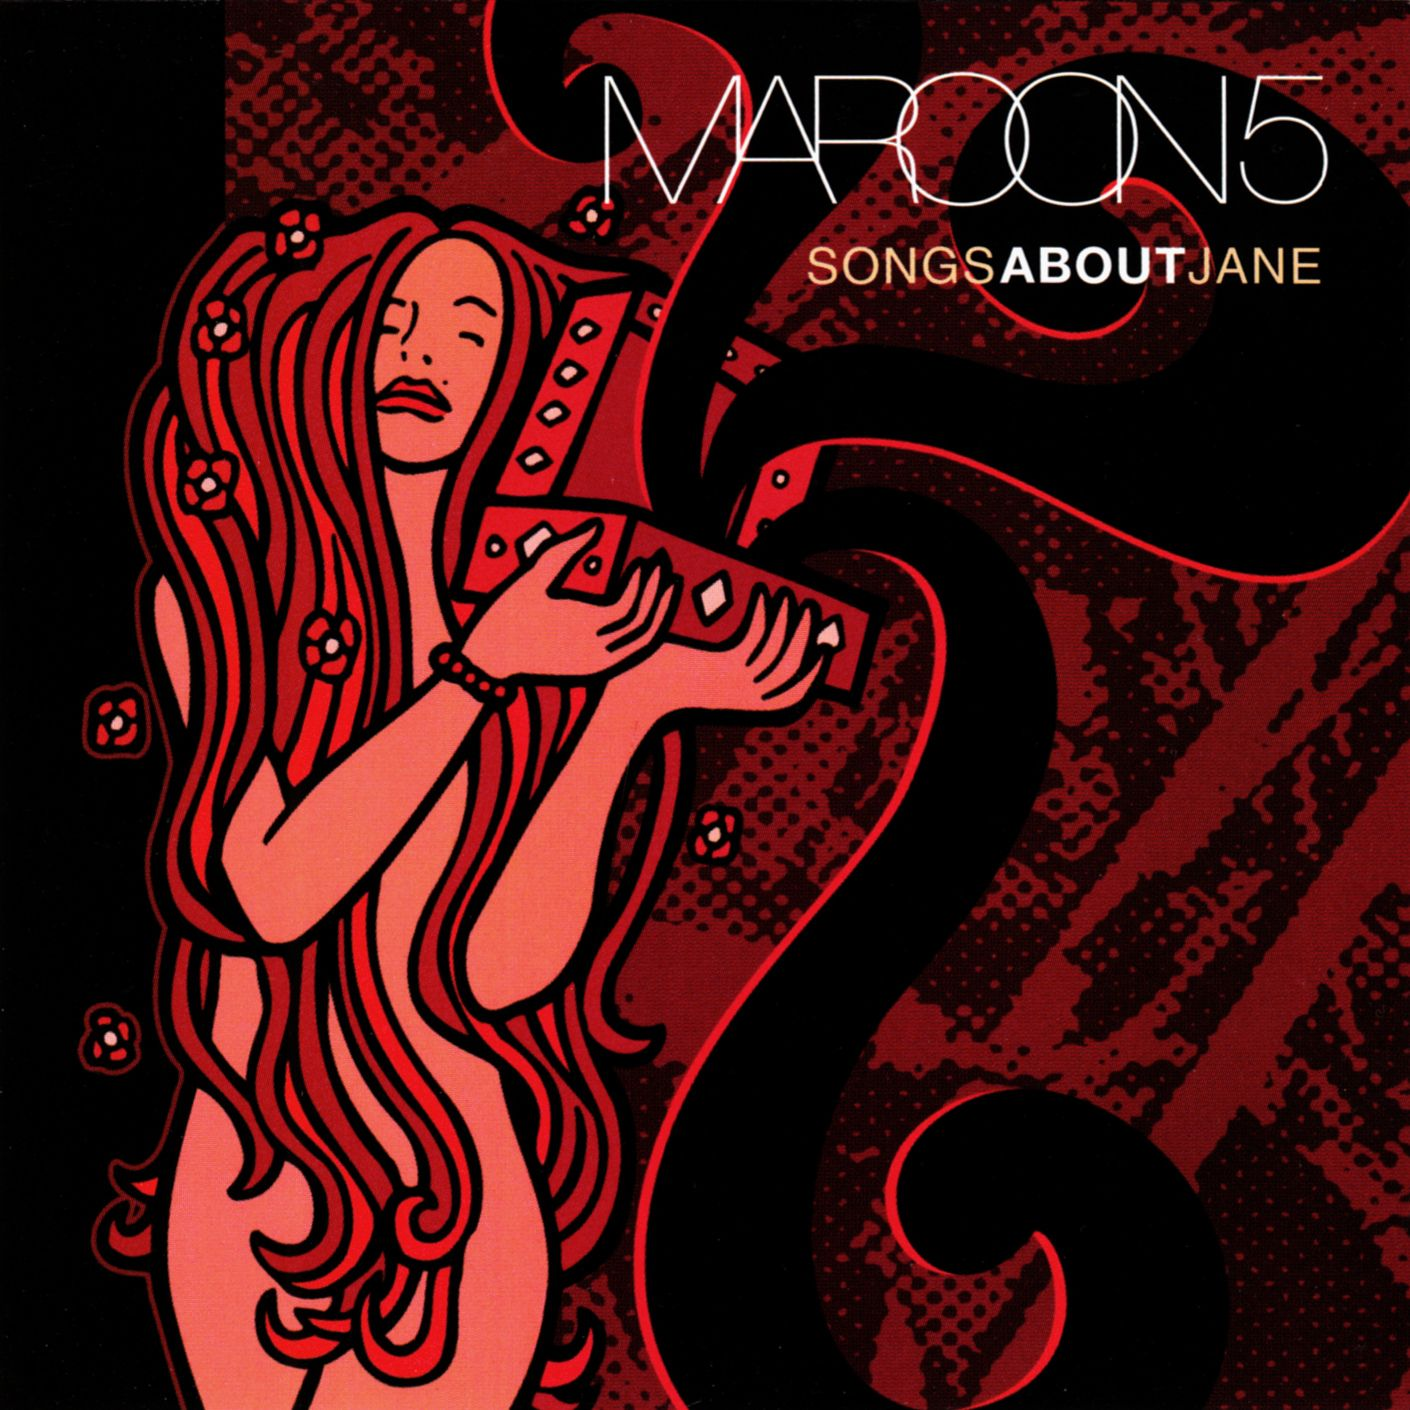 Maroon 5 - Songs About Jane album cover